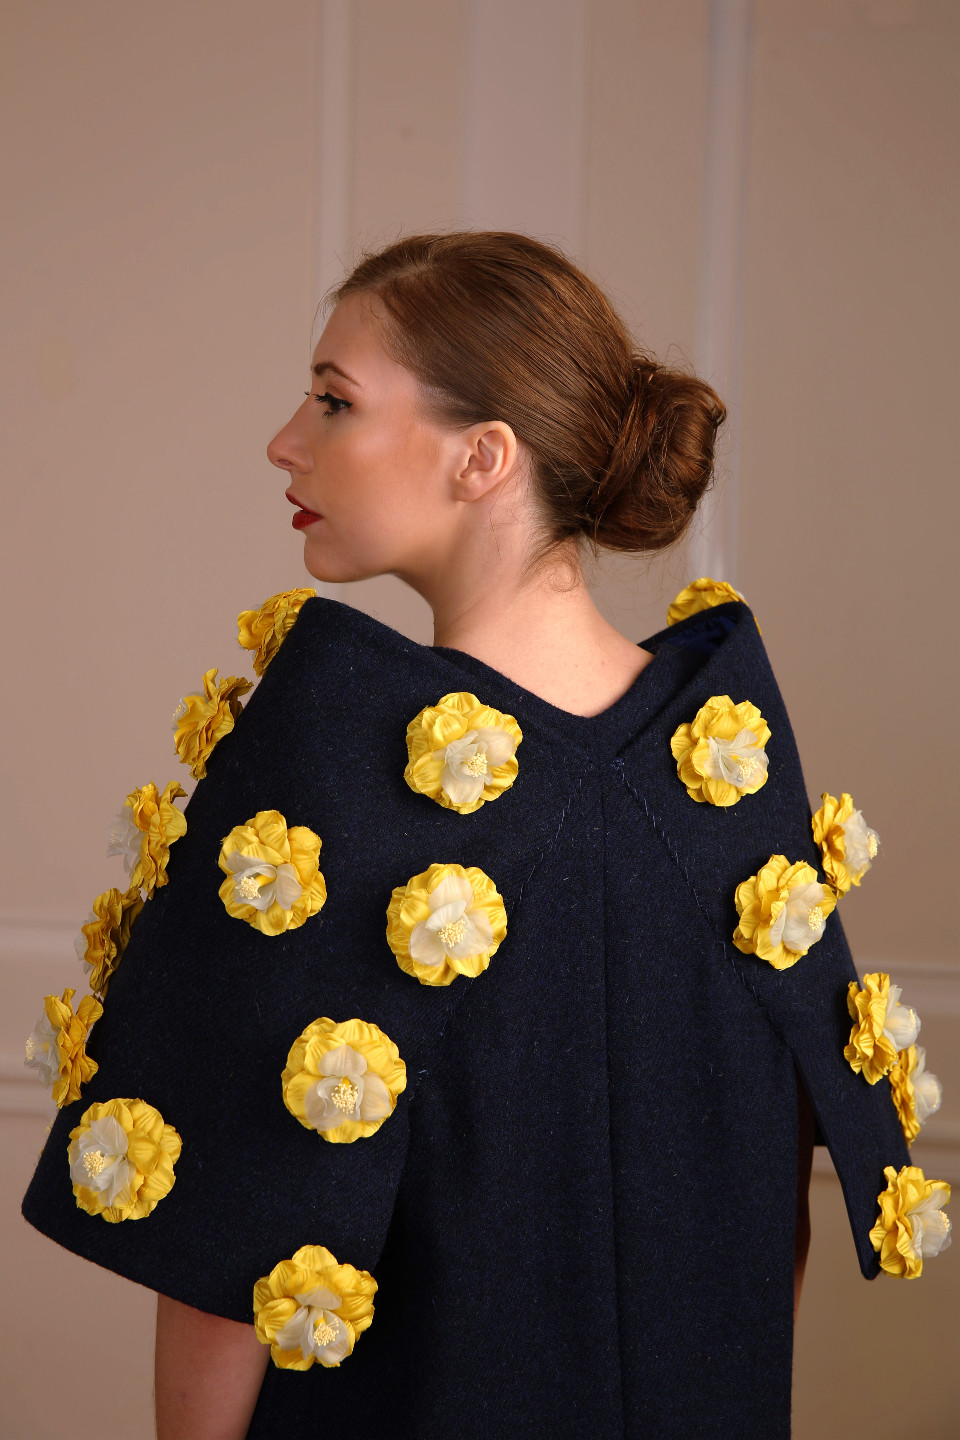 Blue tweed dress coat with yellow applique flowers - chic outfit couture design angelo fair couture designer london